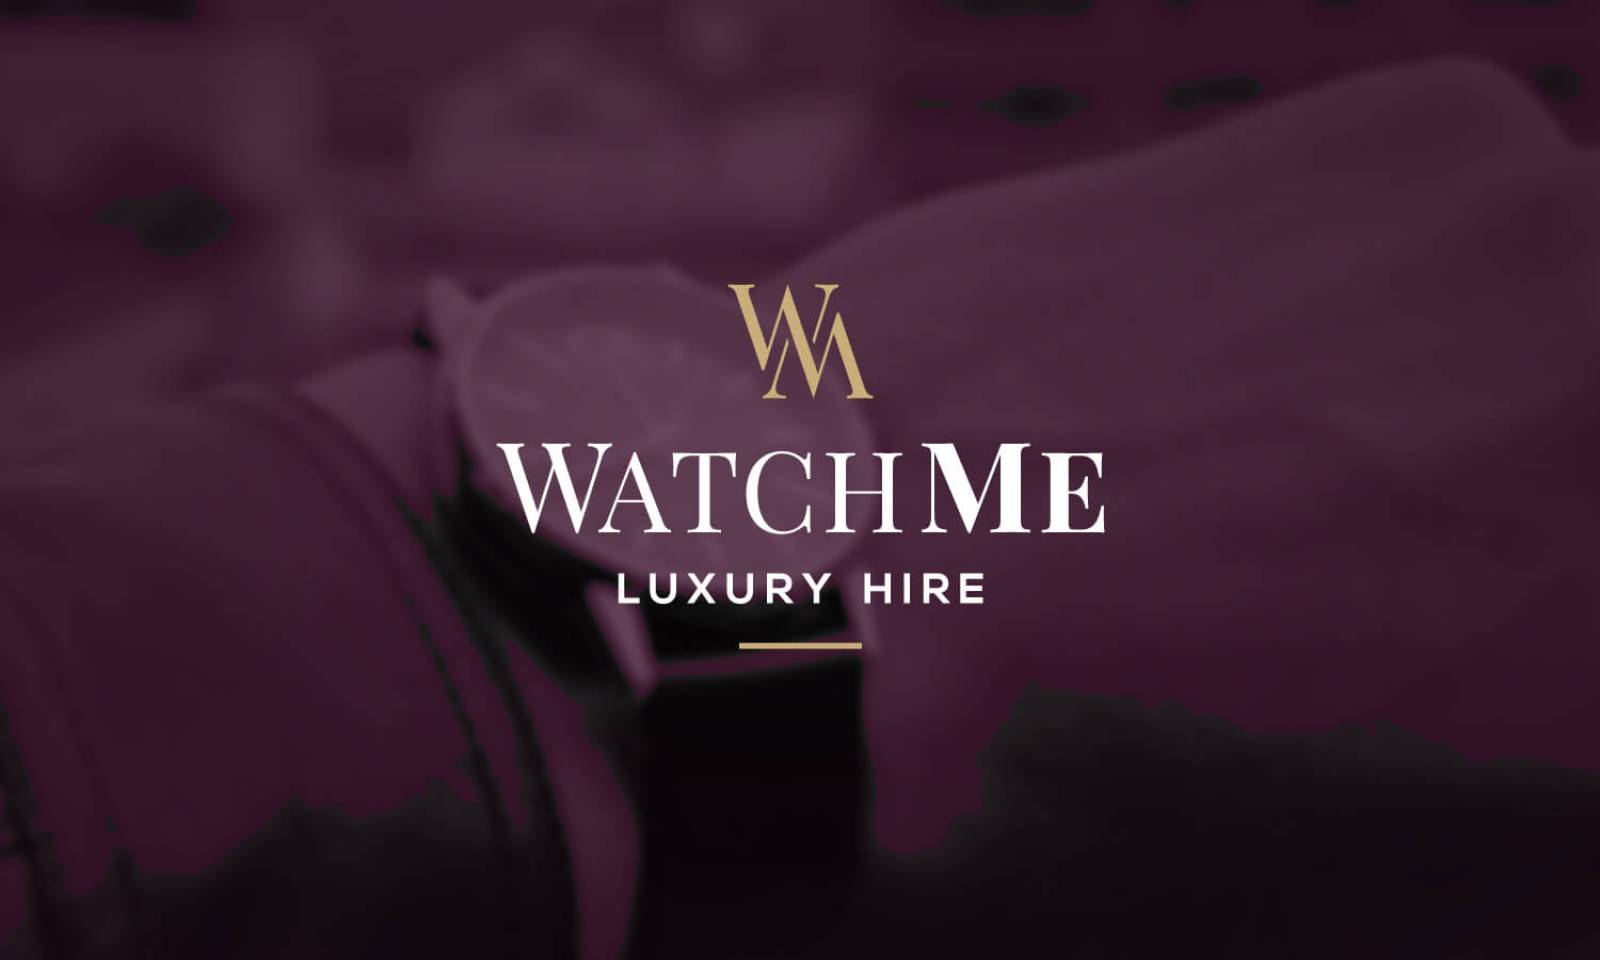 logo-Watchme-3-corporate-identity-agency-graphic-design-canterbury.jpg